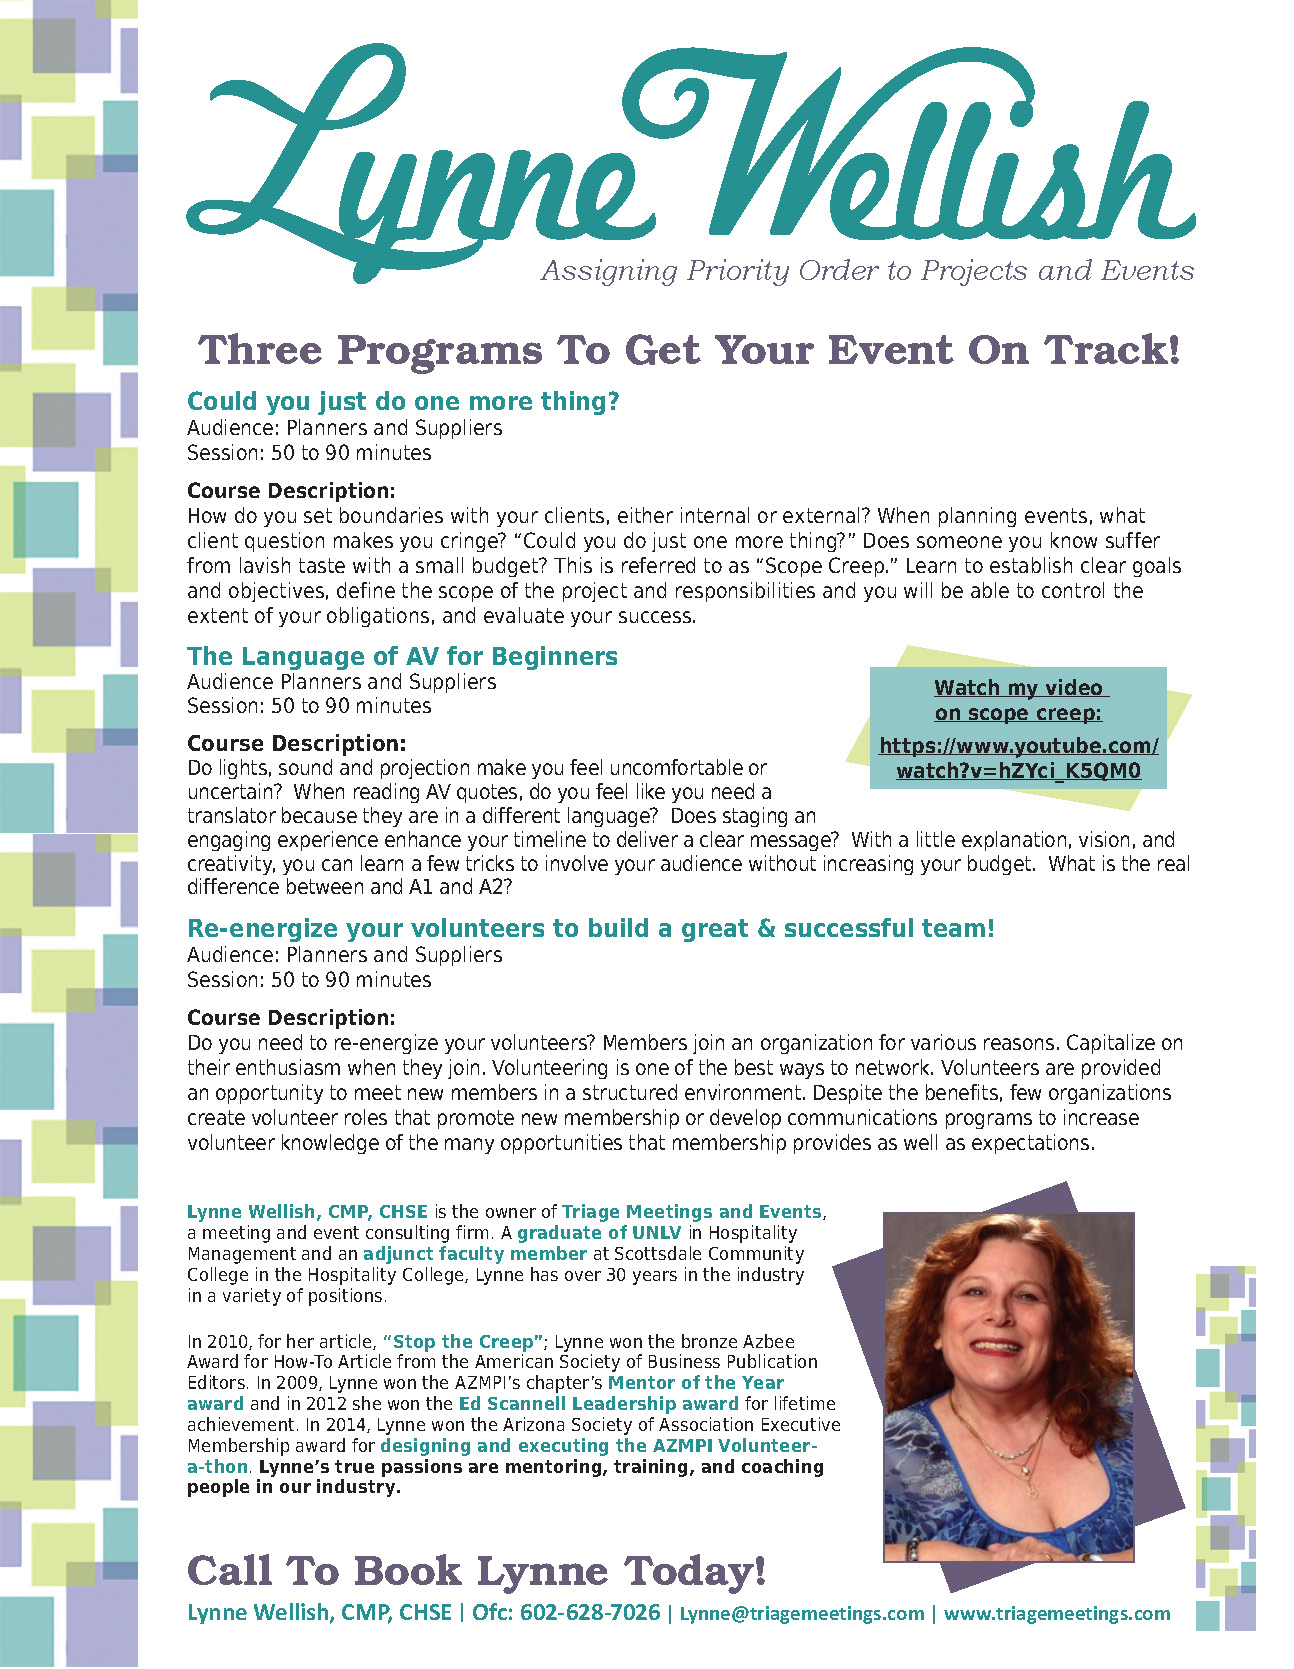 Triage Meeting and Event Consulting-Lynne Wellish